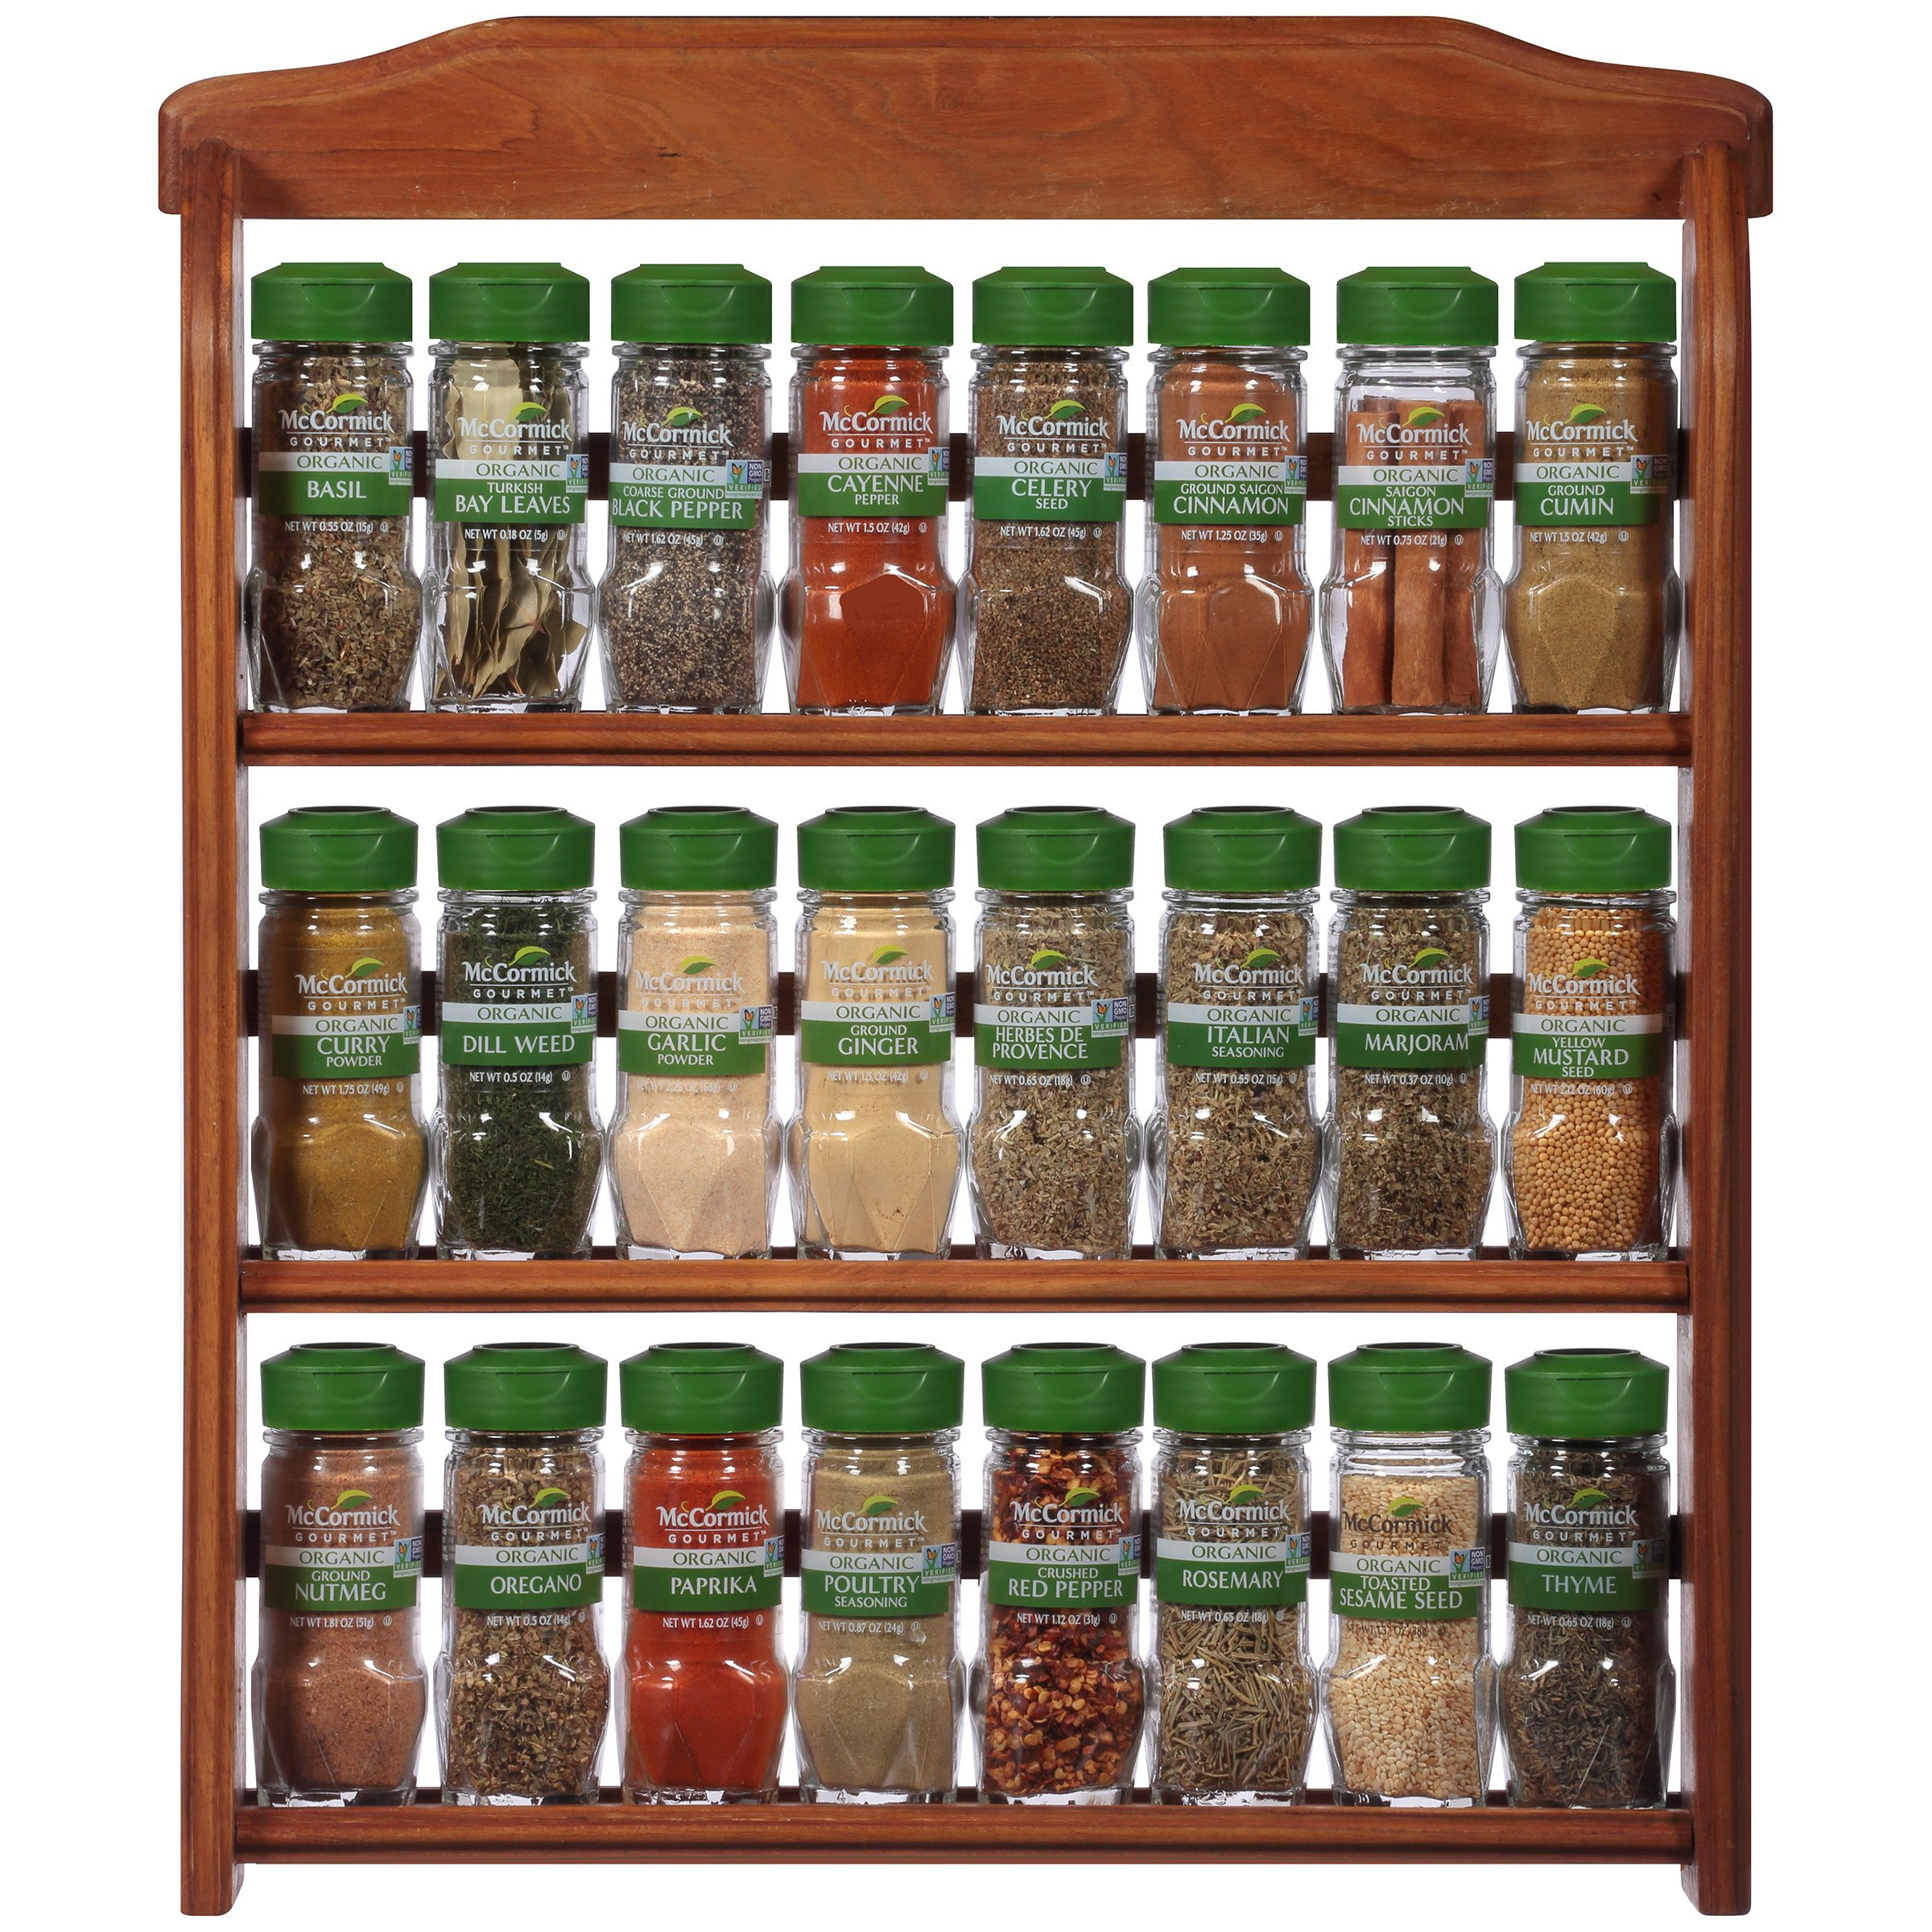 McCormick Gourmet  Three Tier Wood 24 Piece Organic Spice Rack (Spices Included, 3 Spice Rack Shelves, 24 Herbs & Spices), 27.6 oz by McCormick Gourmet